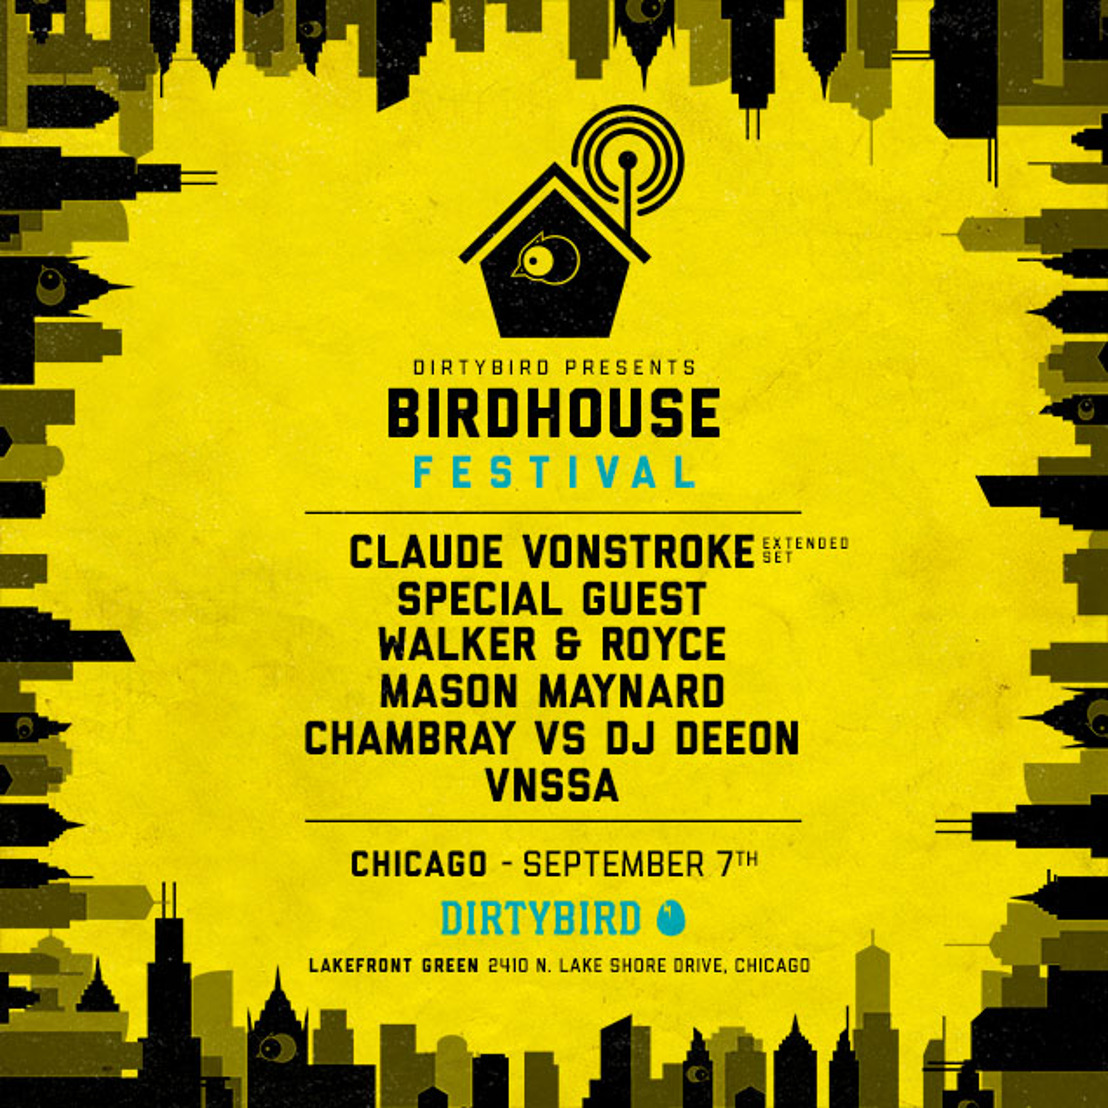 DIRTYBIRD Announces Lineup for Second Birdhouse Festival